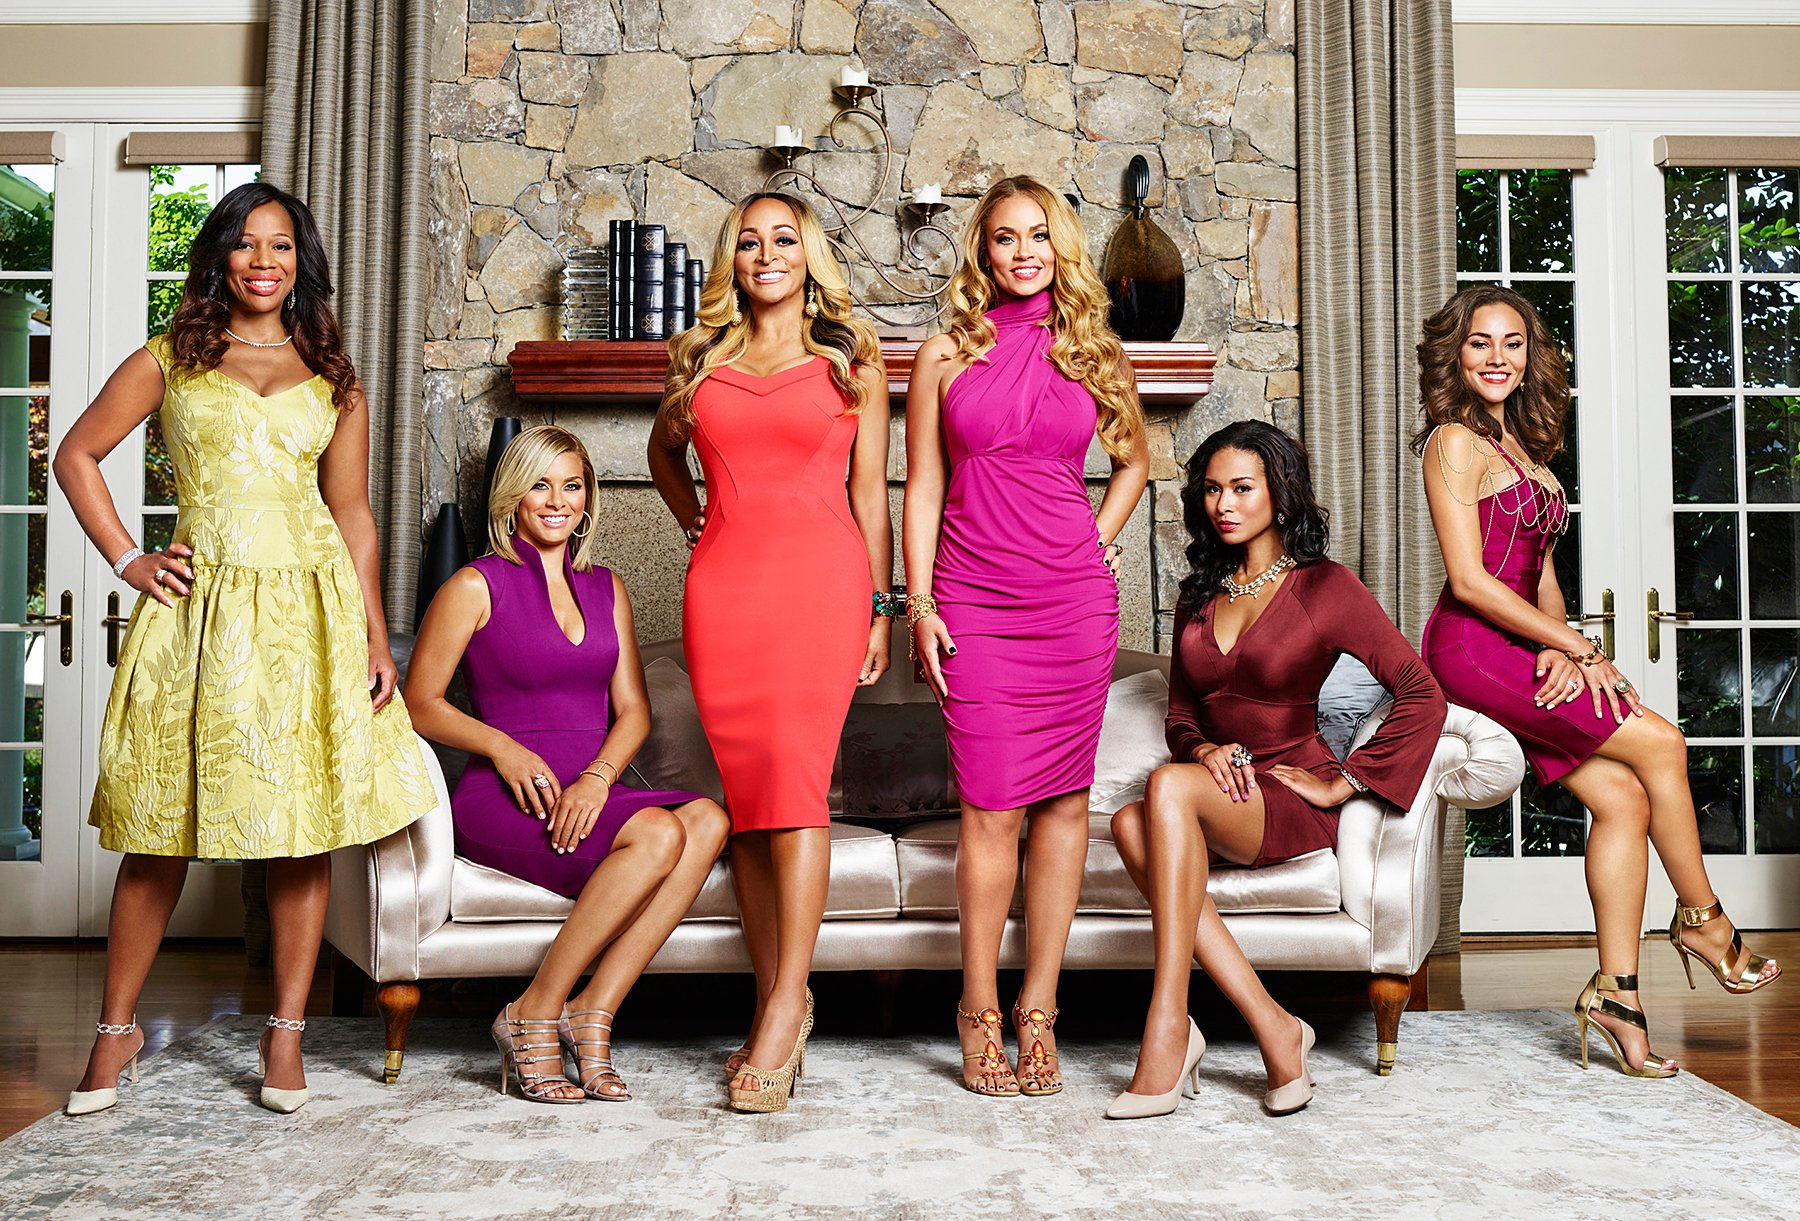 Real Housewives : la série ajoute Washington DC et Dallas